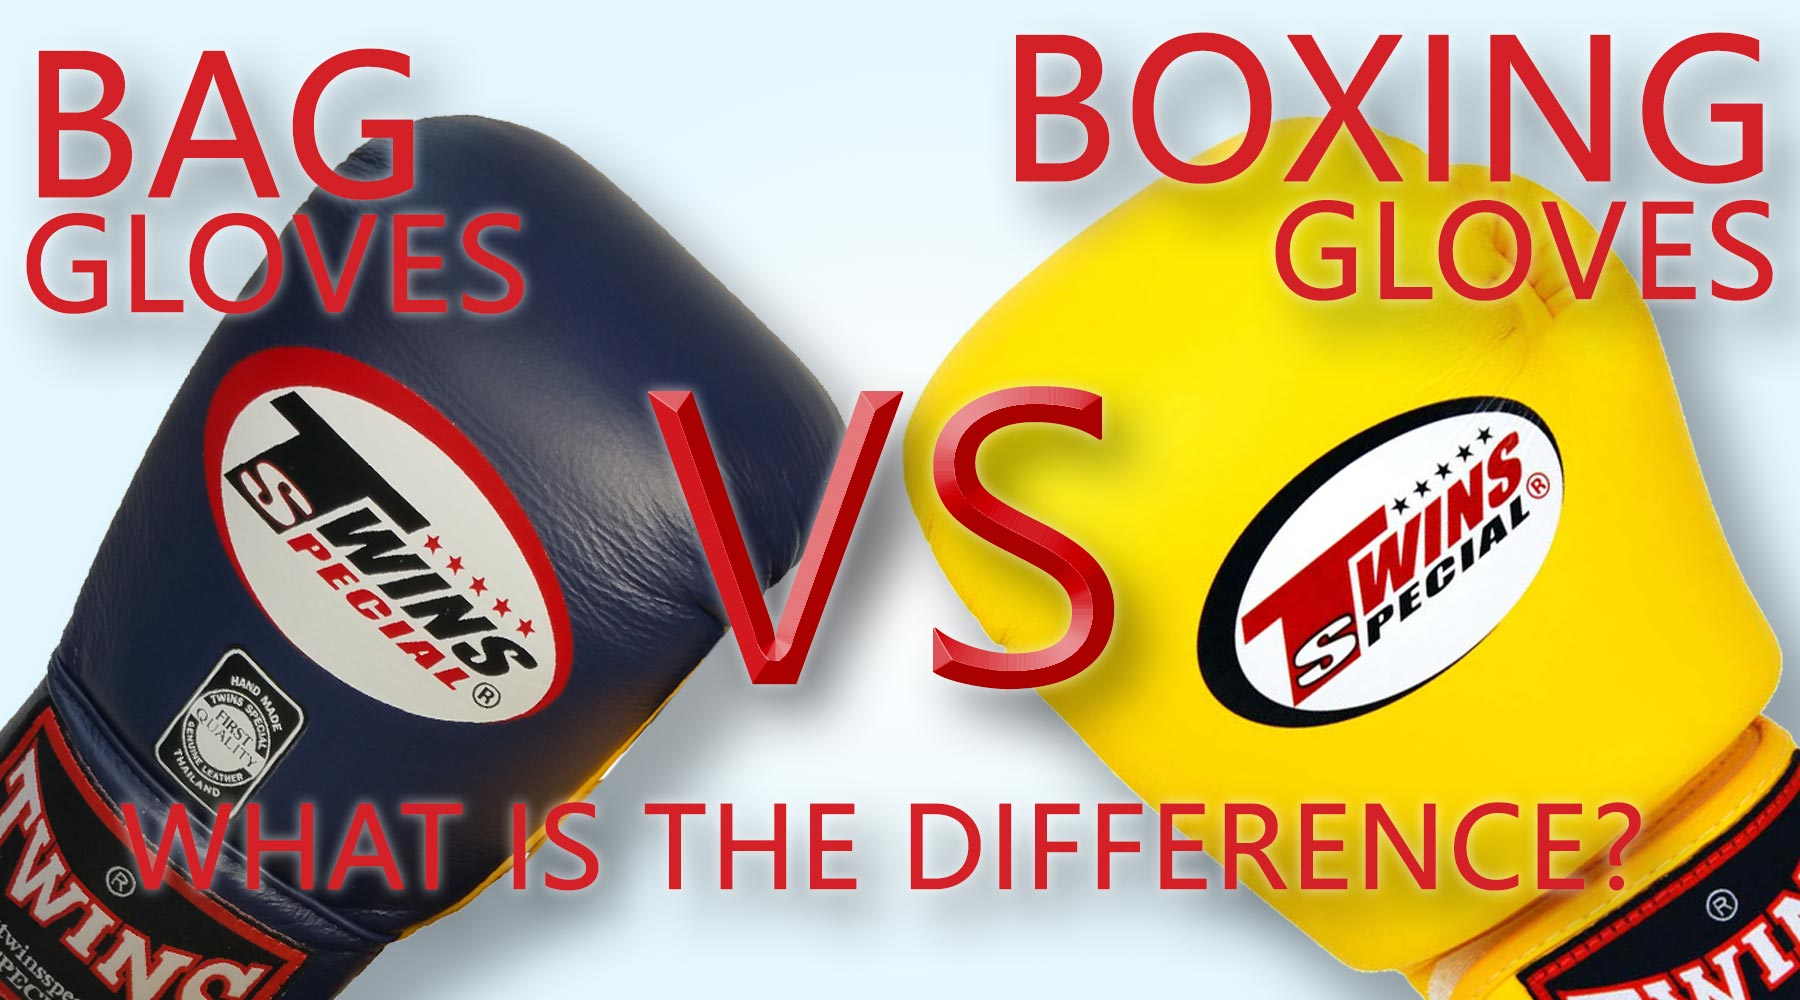 Bag Gloves vs Boxing Gloves